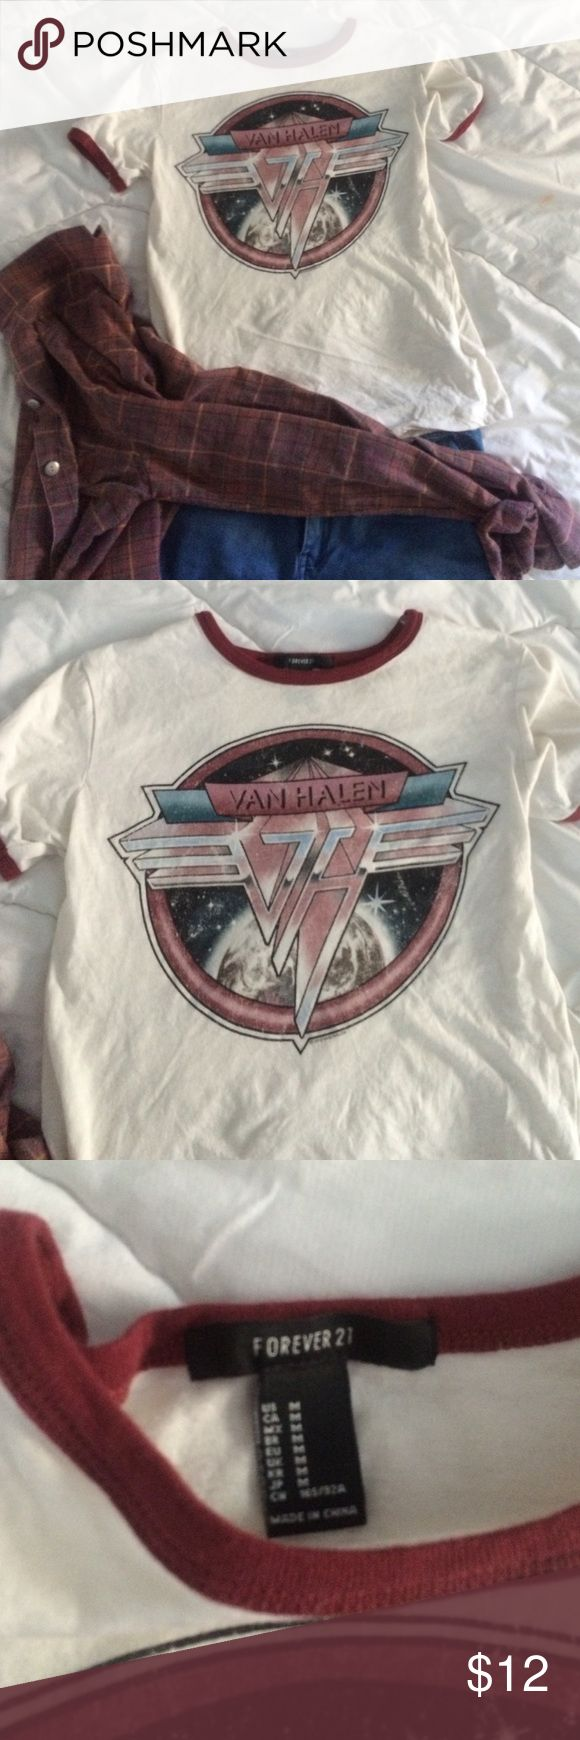 Black keys t shirt uk - Van Halen Band T Shirt Van Halen Band Shirt Wore Once Maroon Burgundy